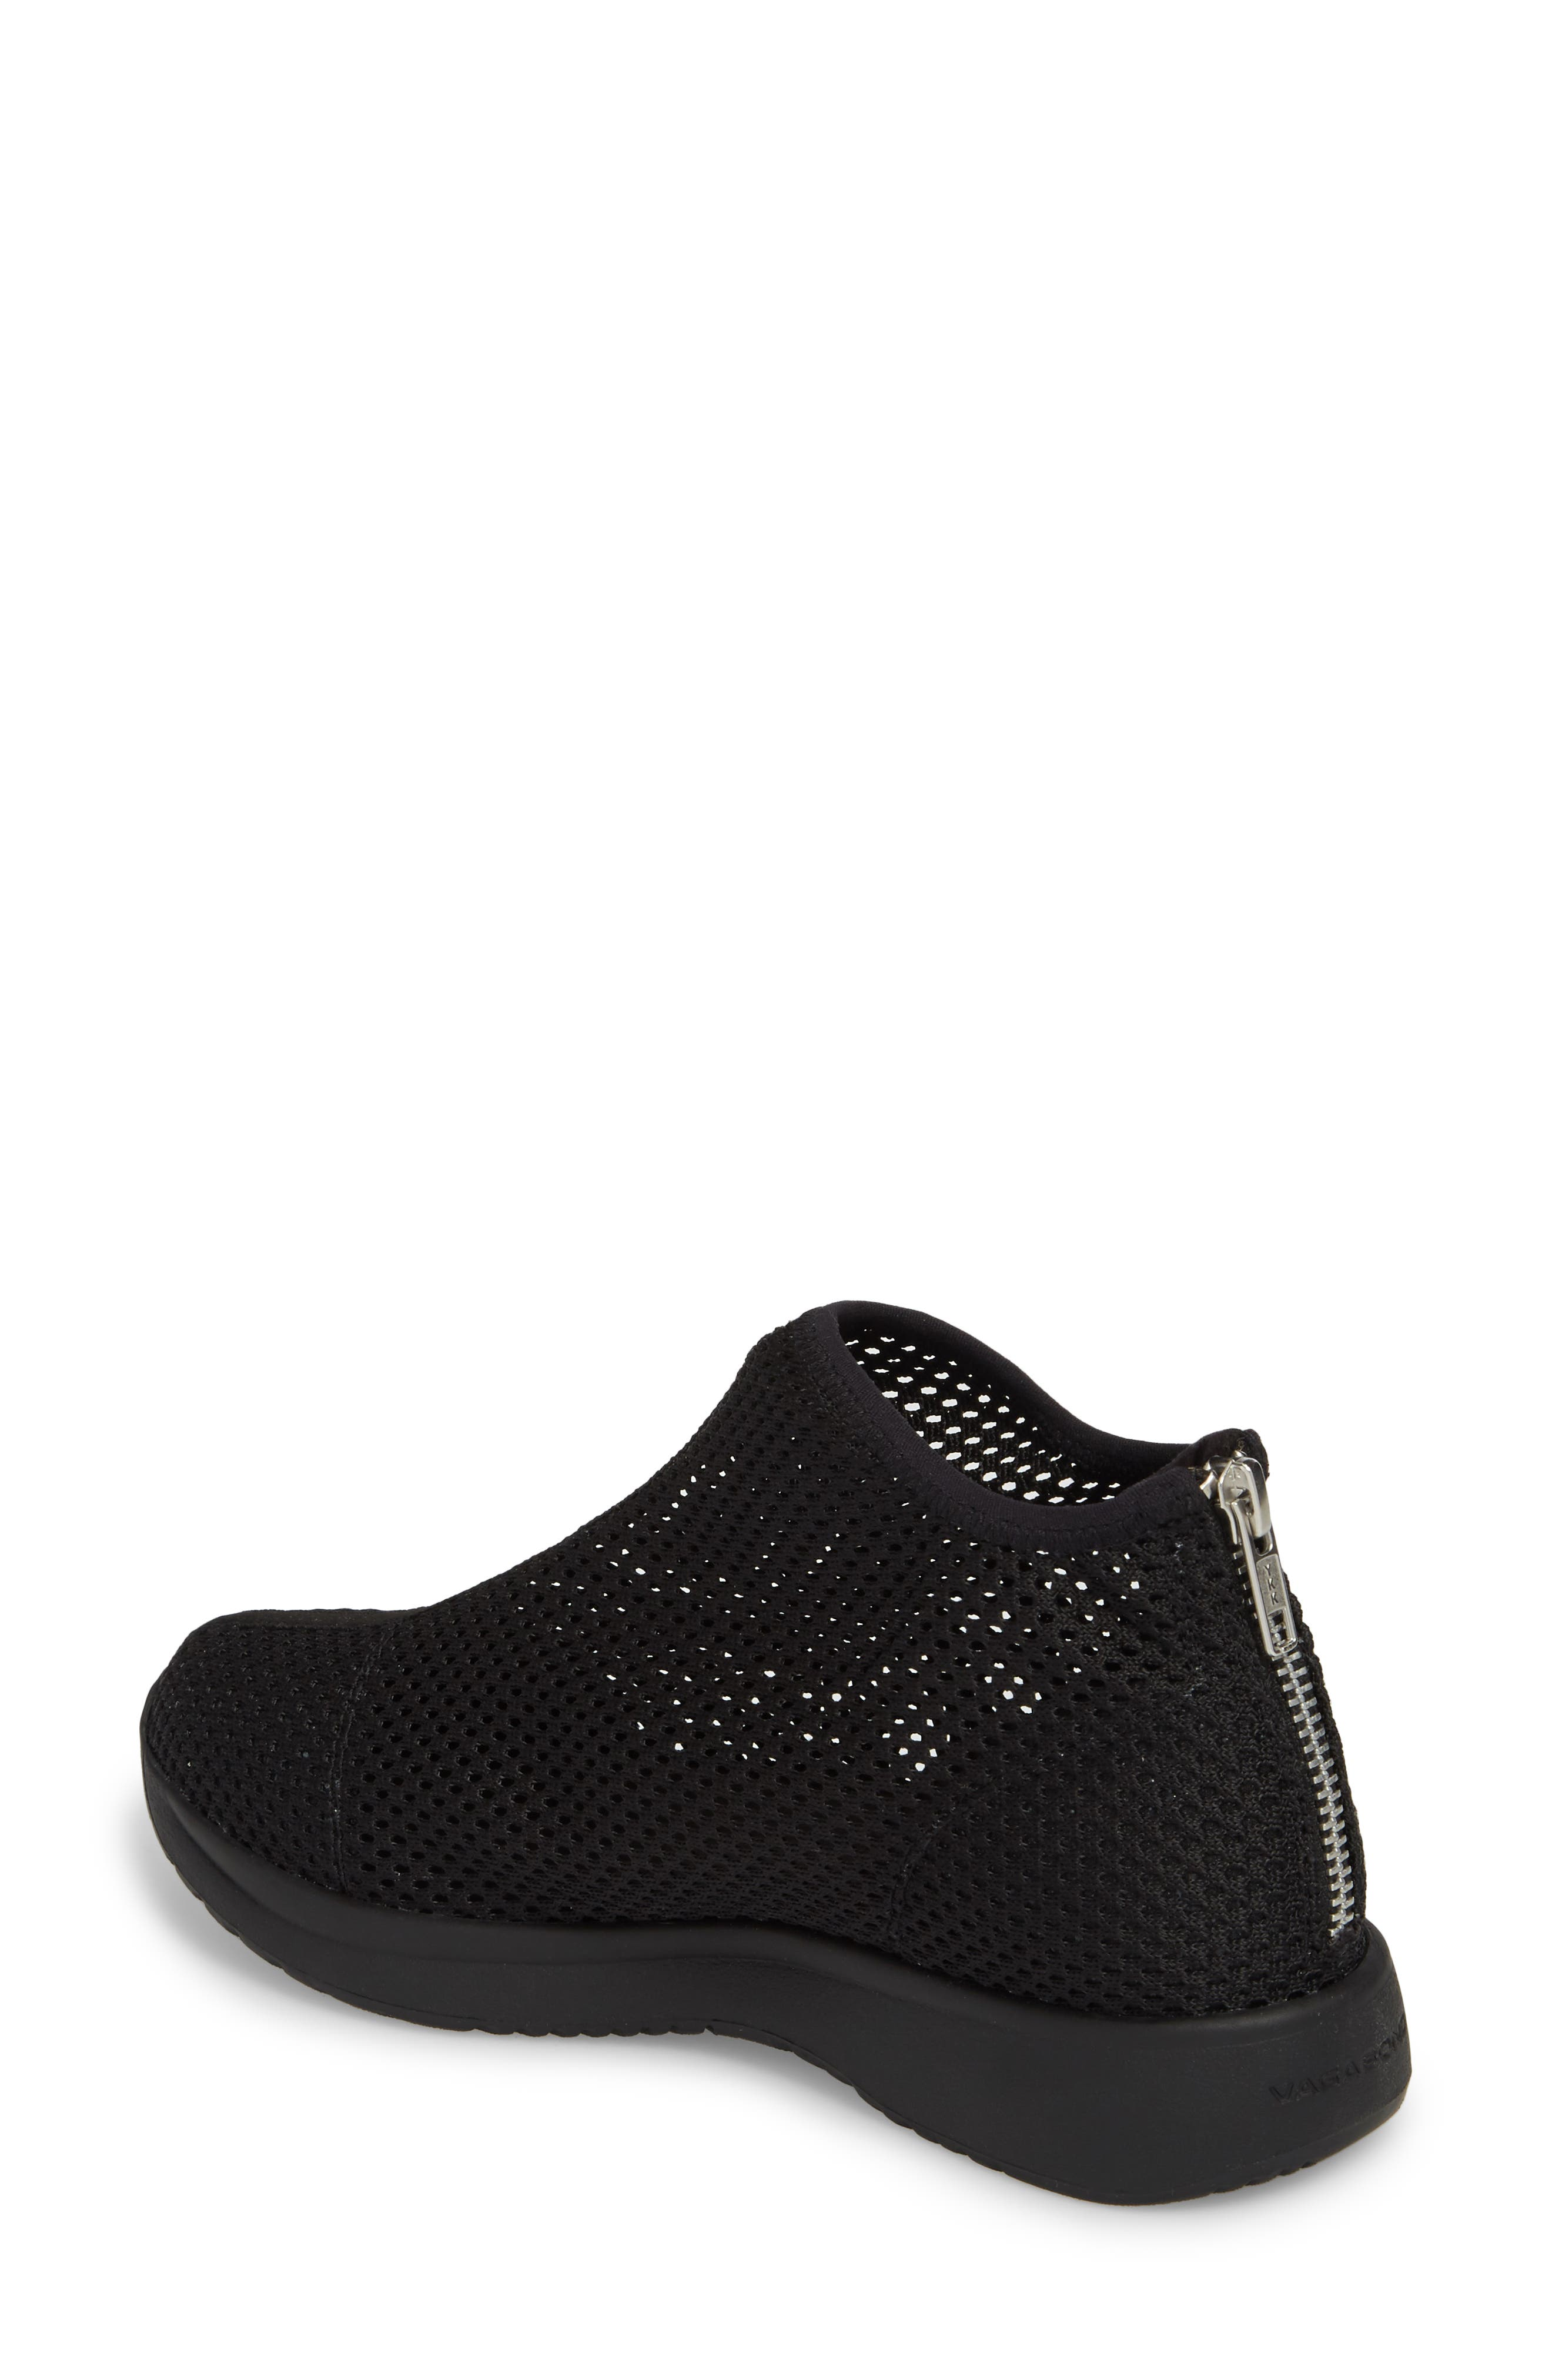 Cintia Sneaker,                             Alternate thumbnail 2, color,                             Black Fabric